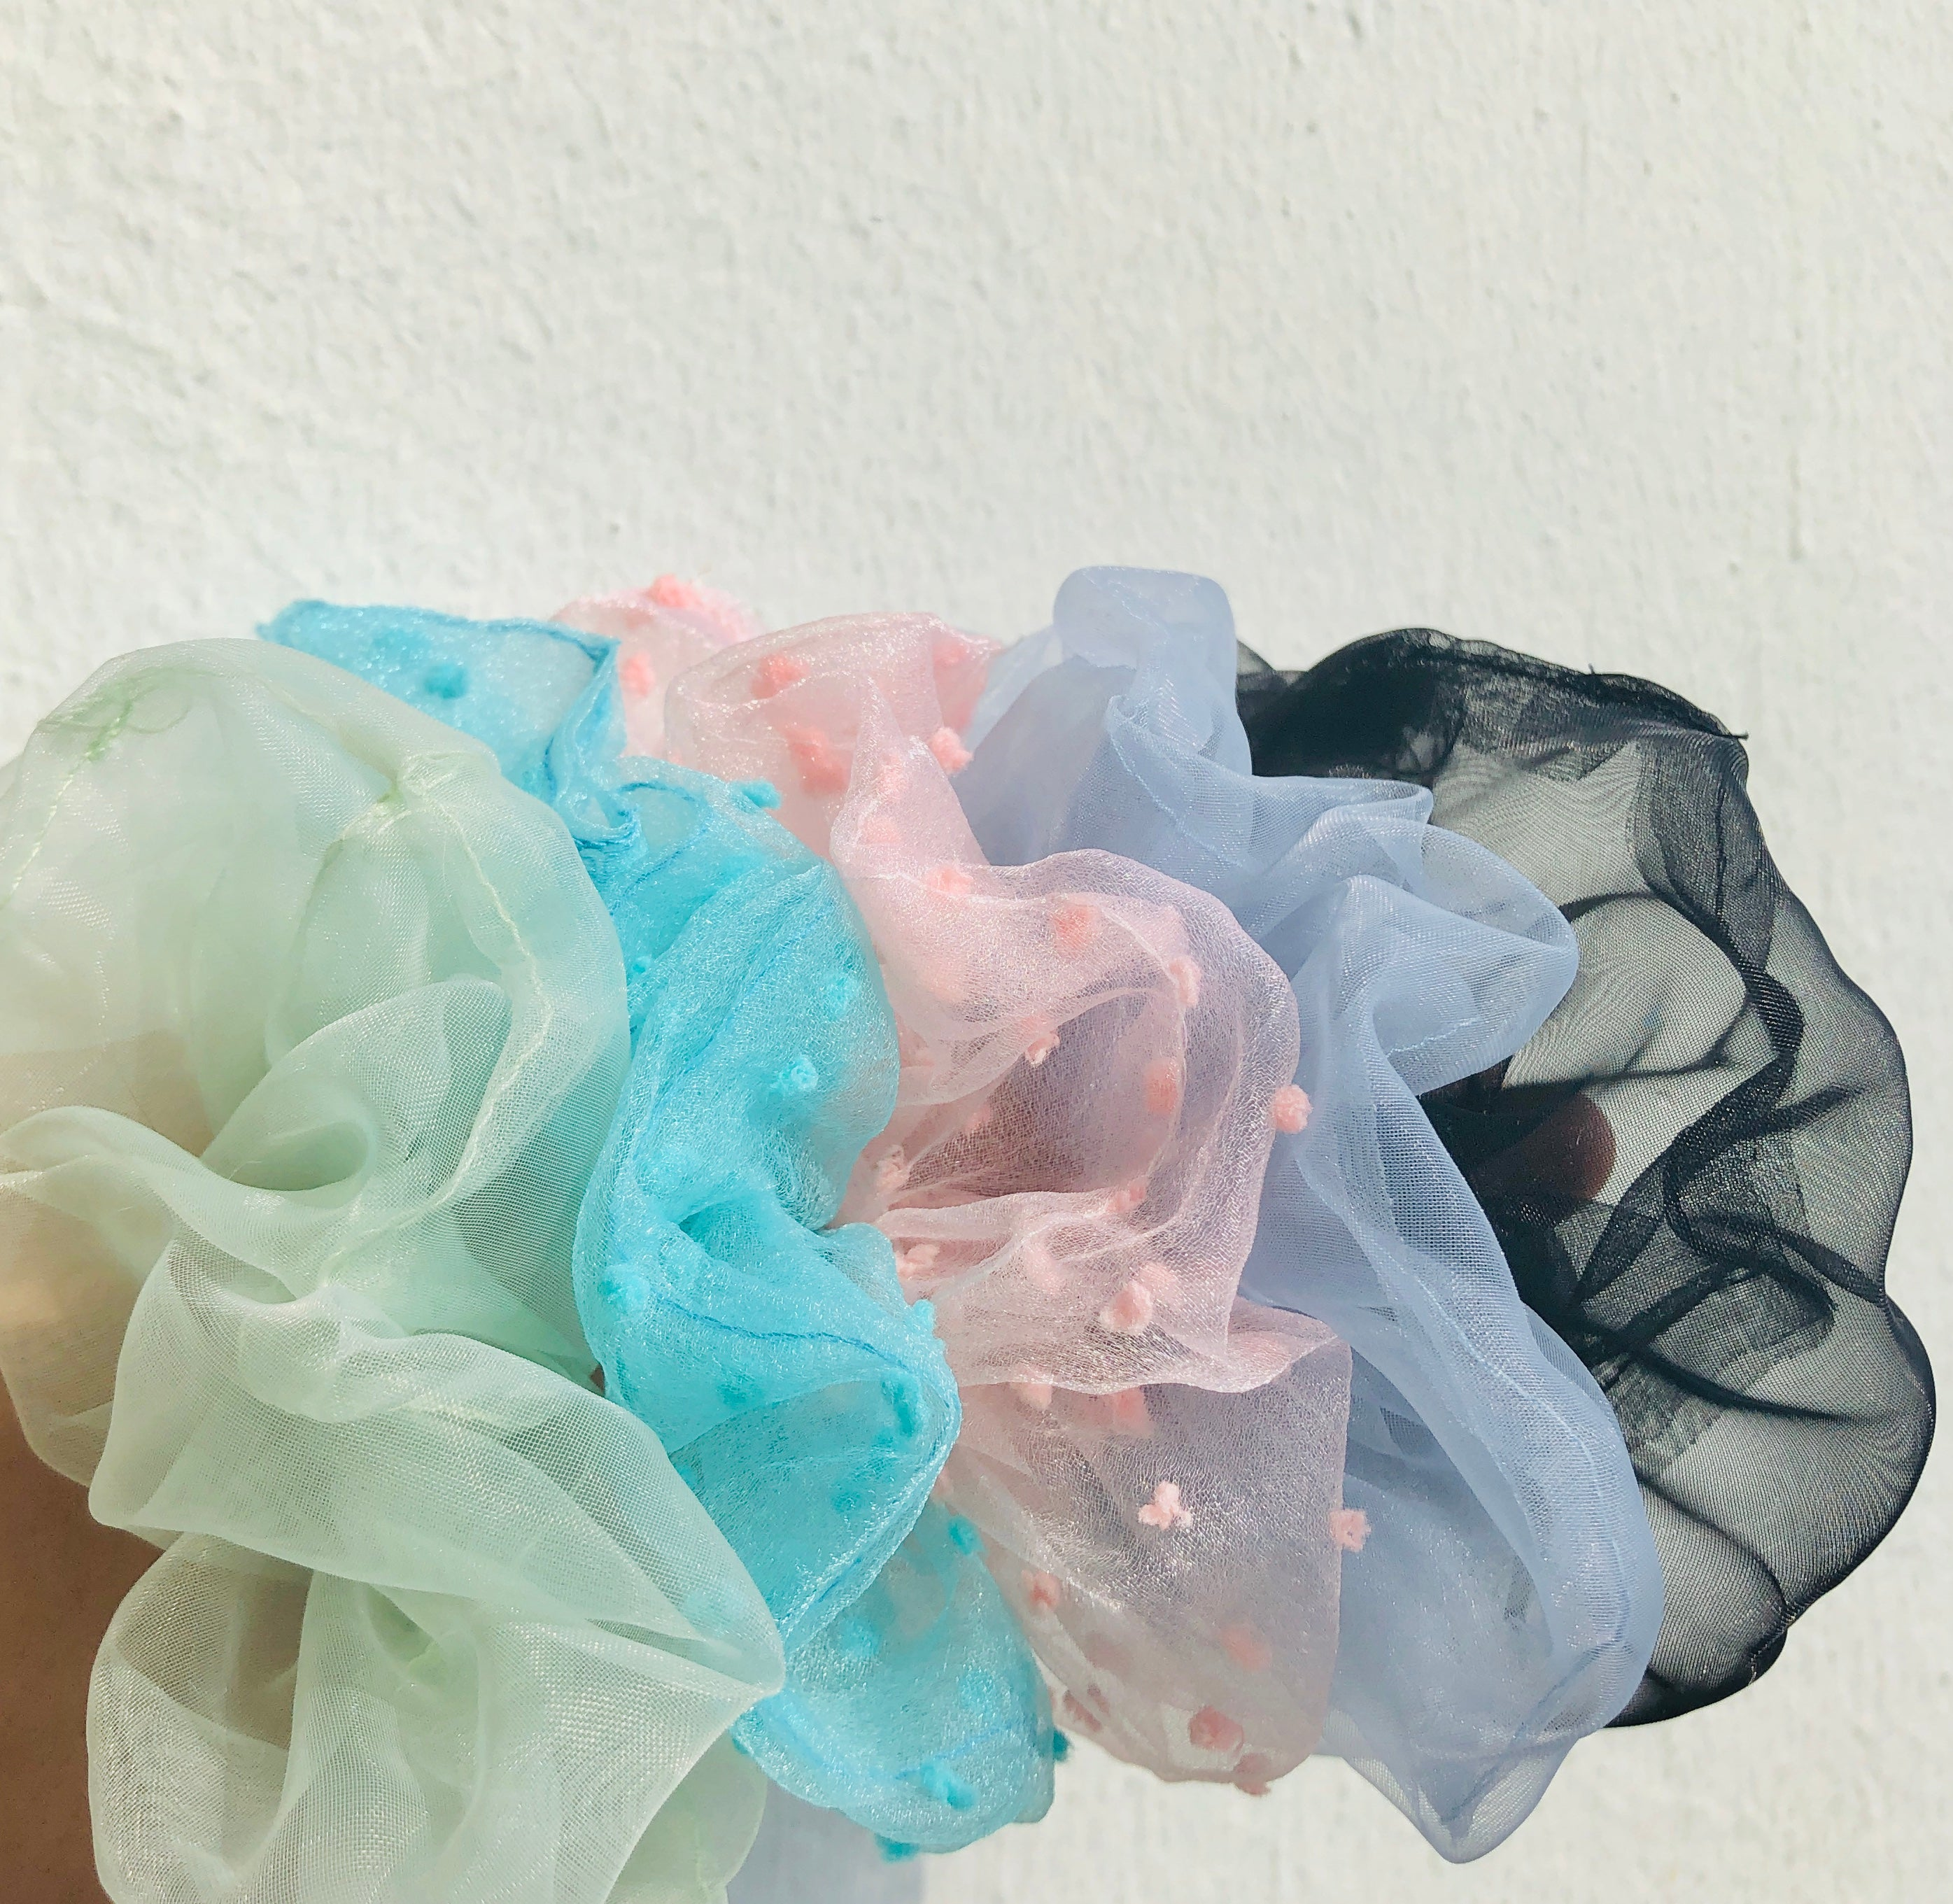 90s Textured Hair Scrunchies by Veronique